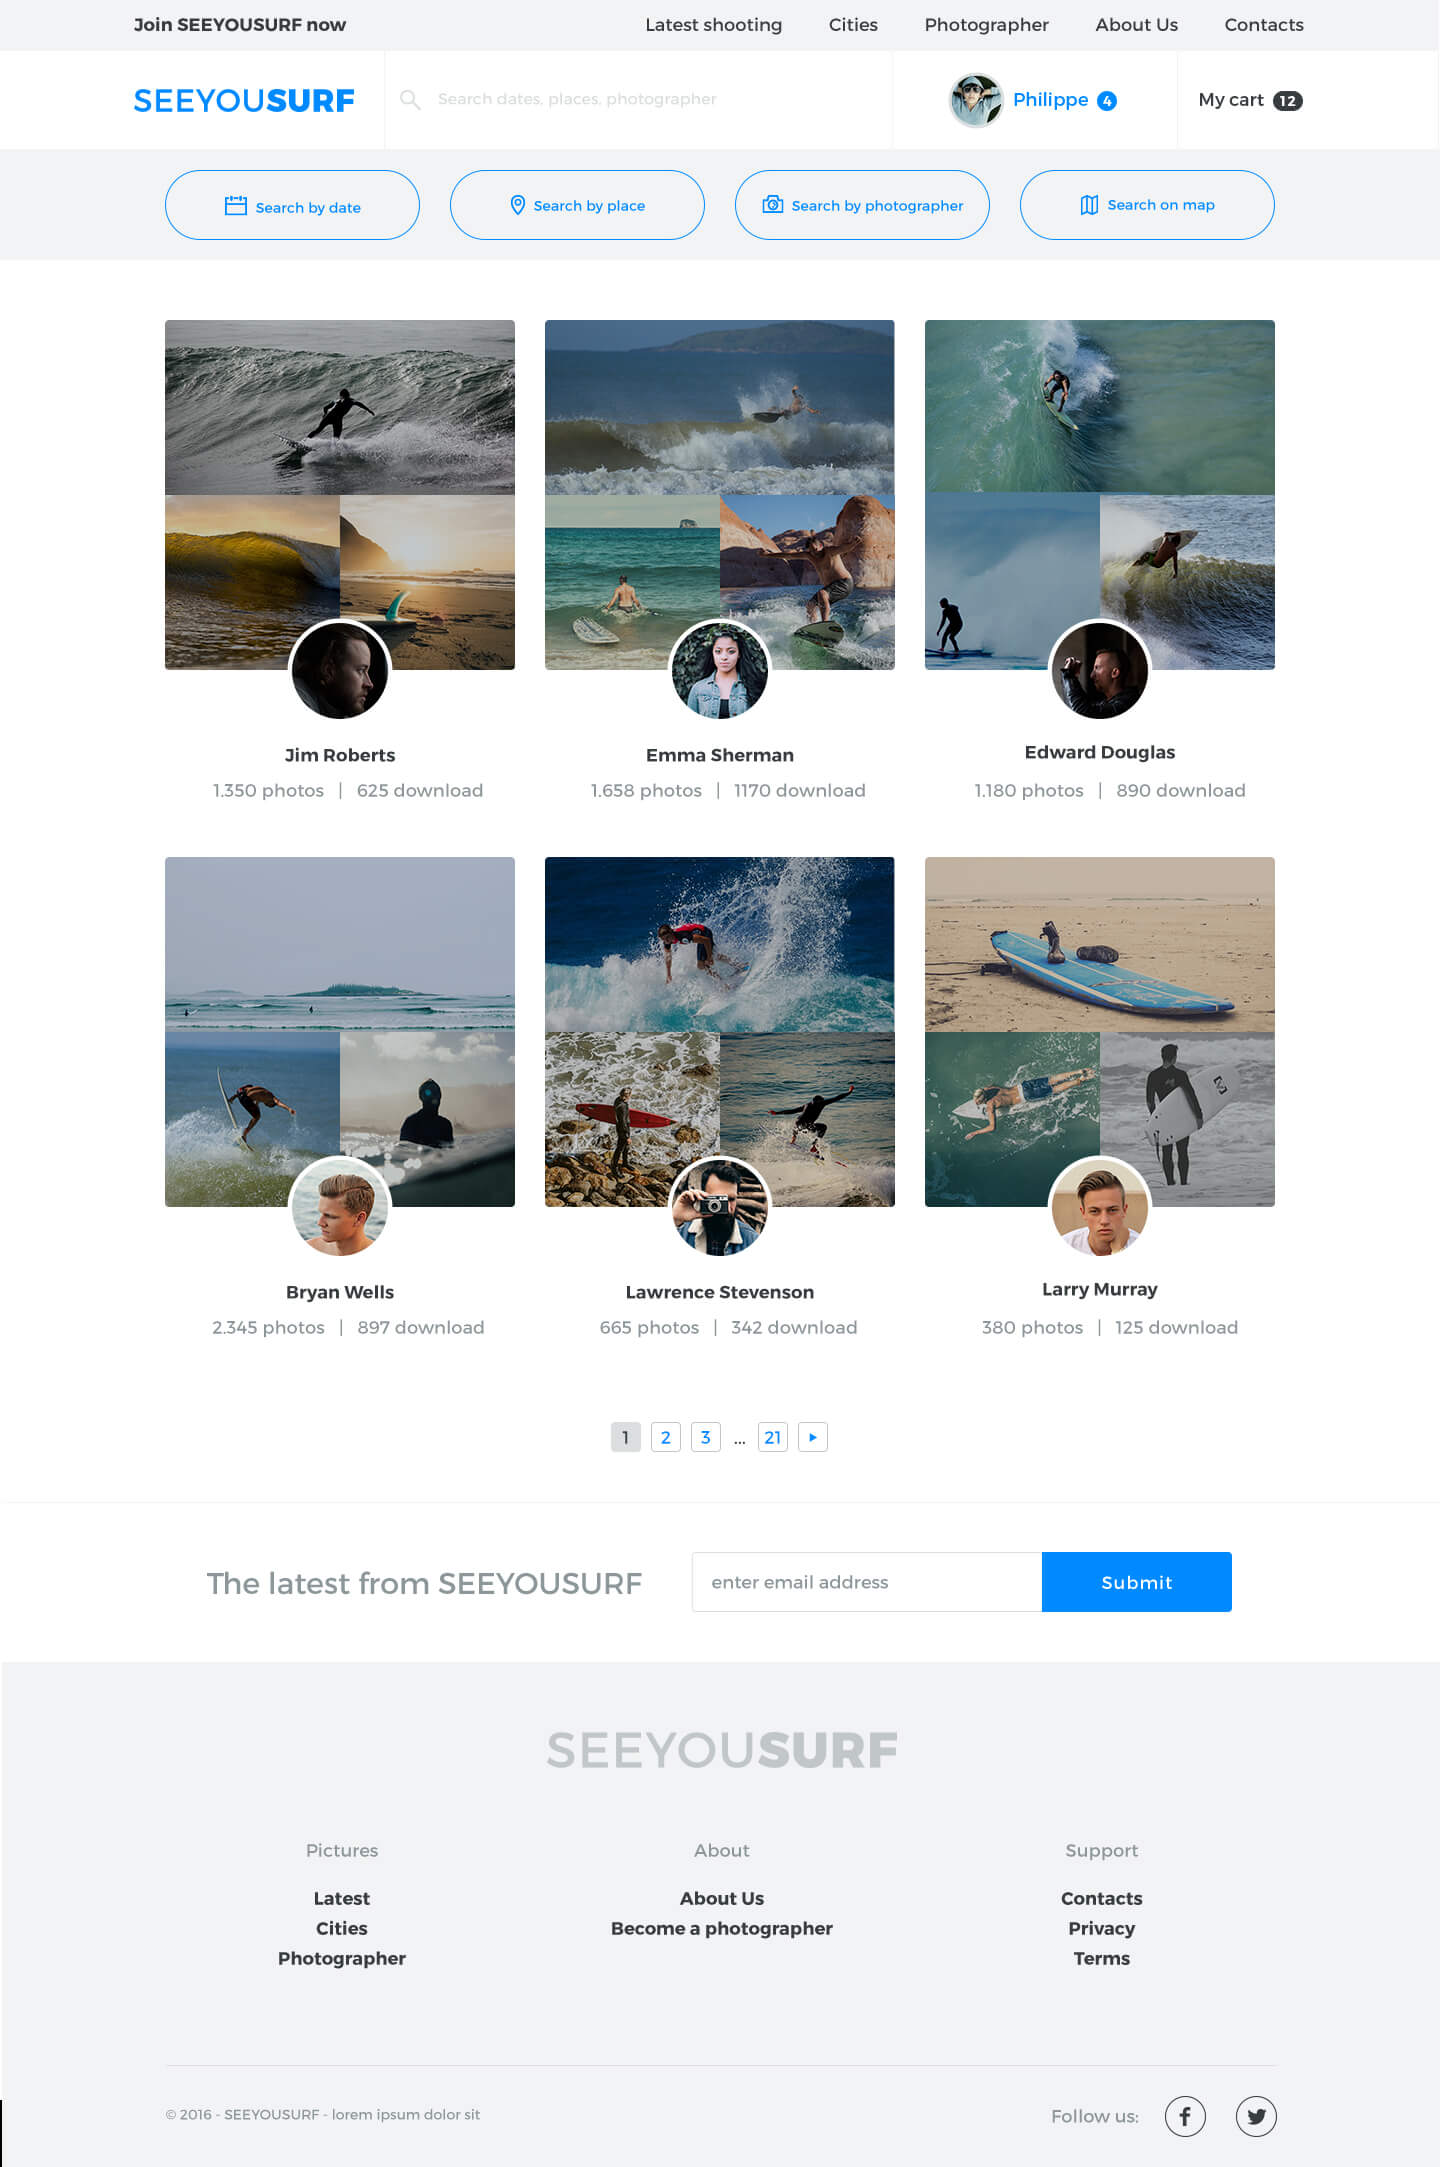 SeeYouSurf_site_02_Search_Photographer